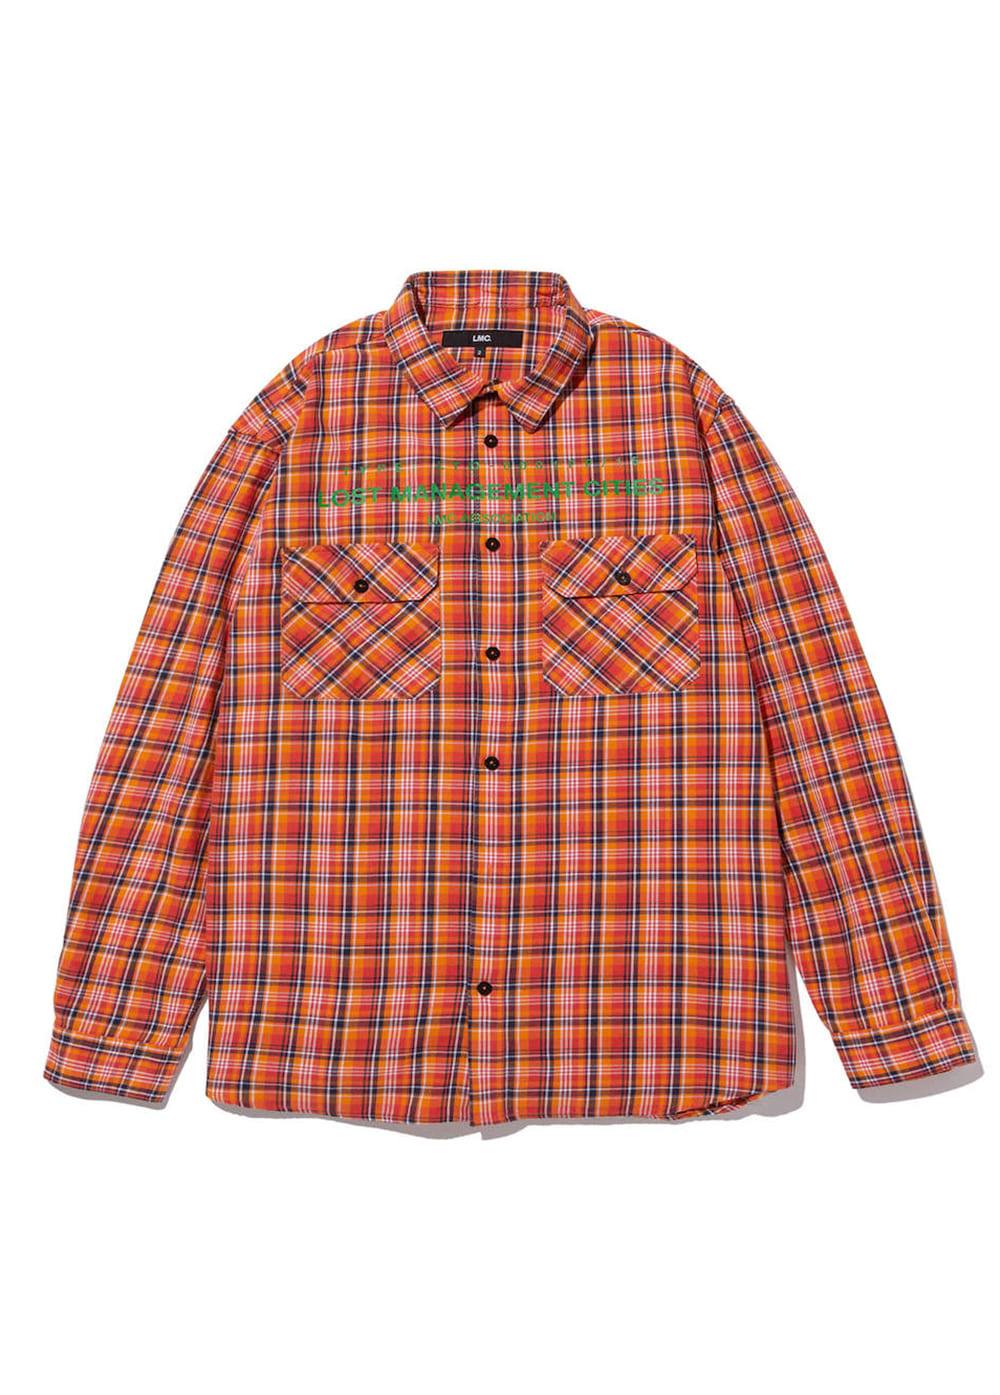 LMC TOP ASSOCIATION PLAID SHIRT orange